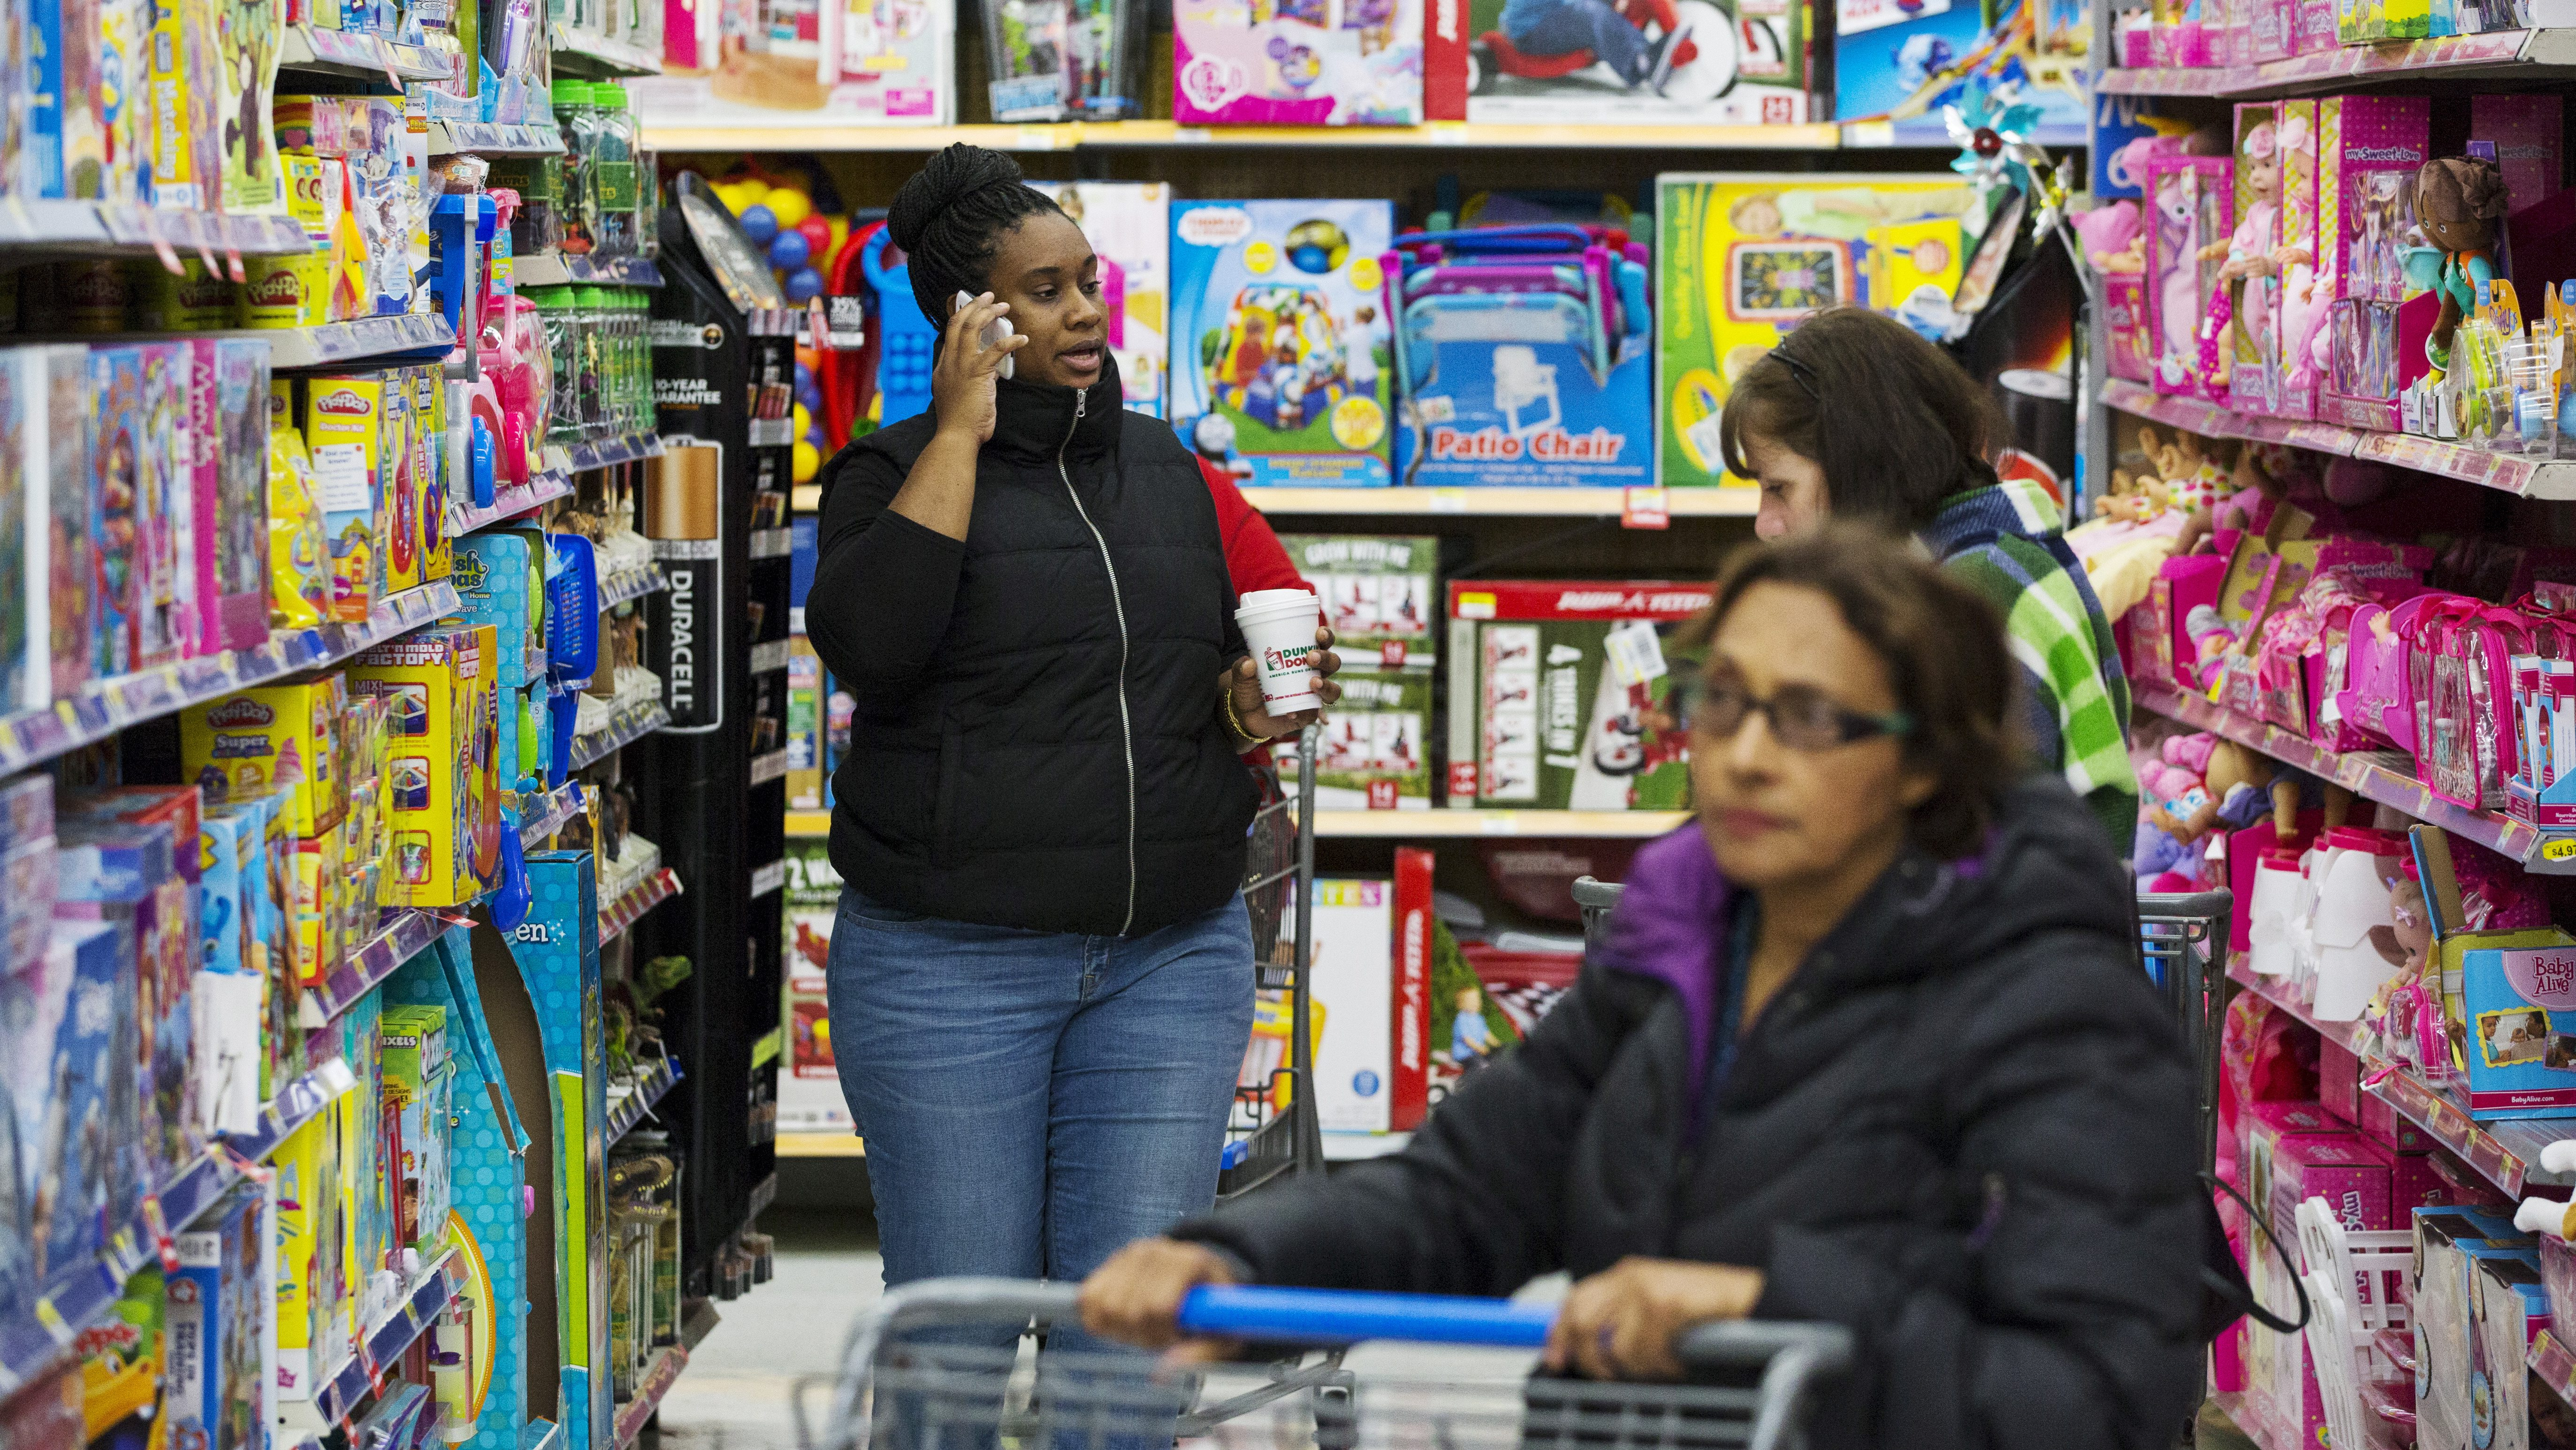 Shoppers look at merchandise at a Walmart store in Secaucus, New Jersey, November 11, 2015. REUTERS/Lucas Jackson - RTS6KOO